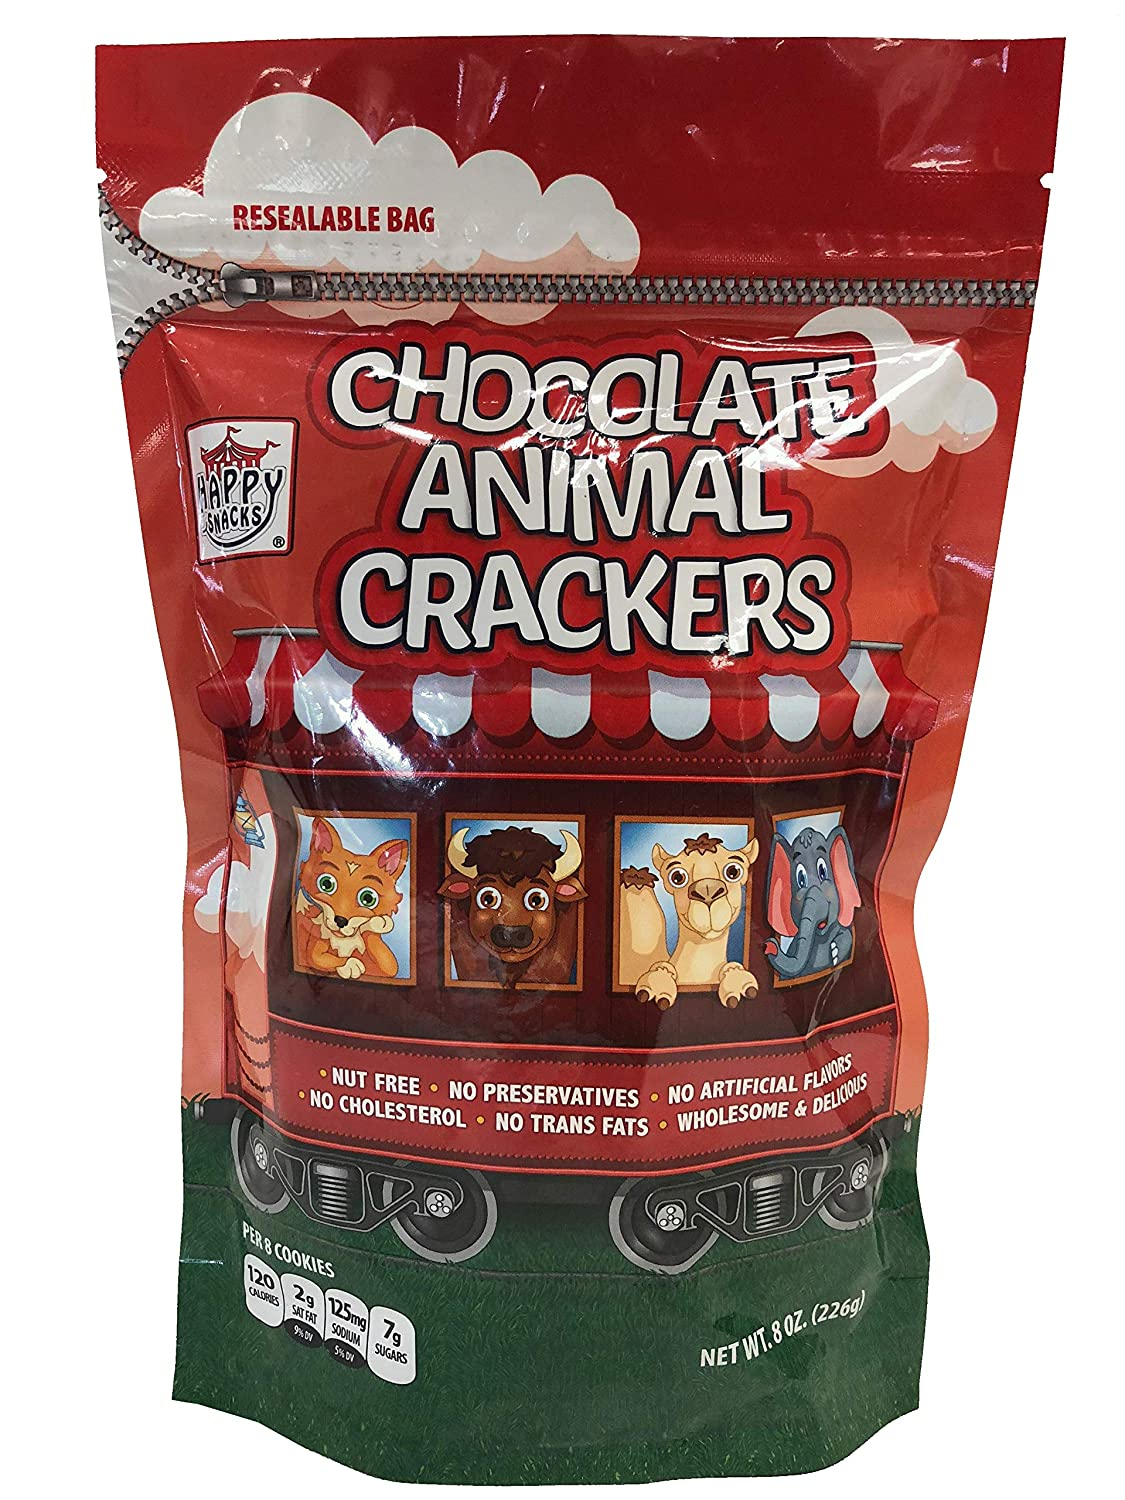 Happy Snacks Animal Max 57% OFF Crackers Chocolate Resealable 8 Bag Ounce Selling and selling